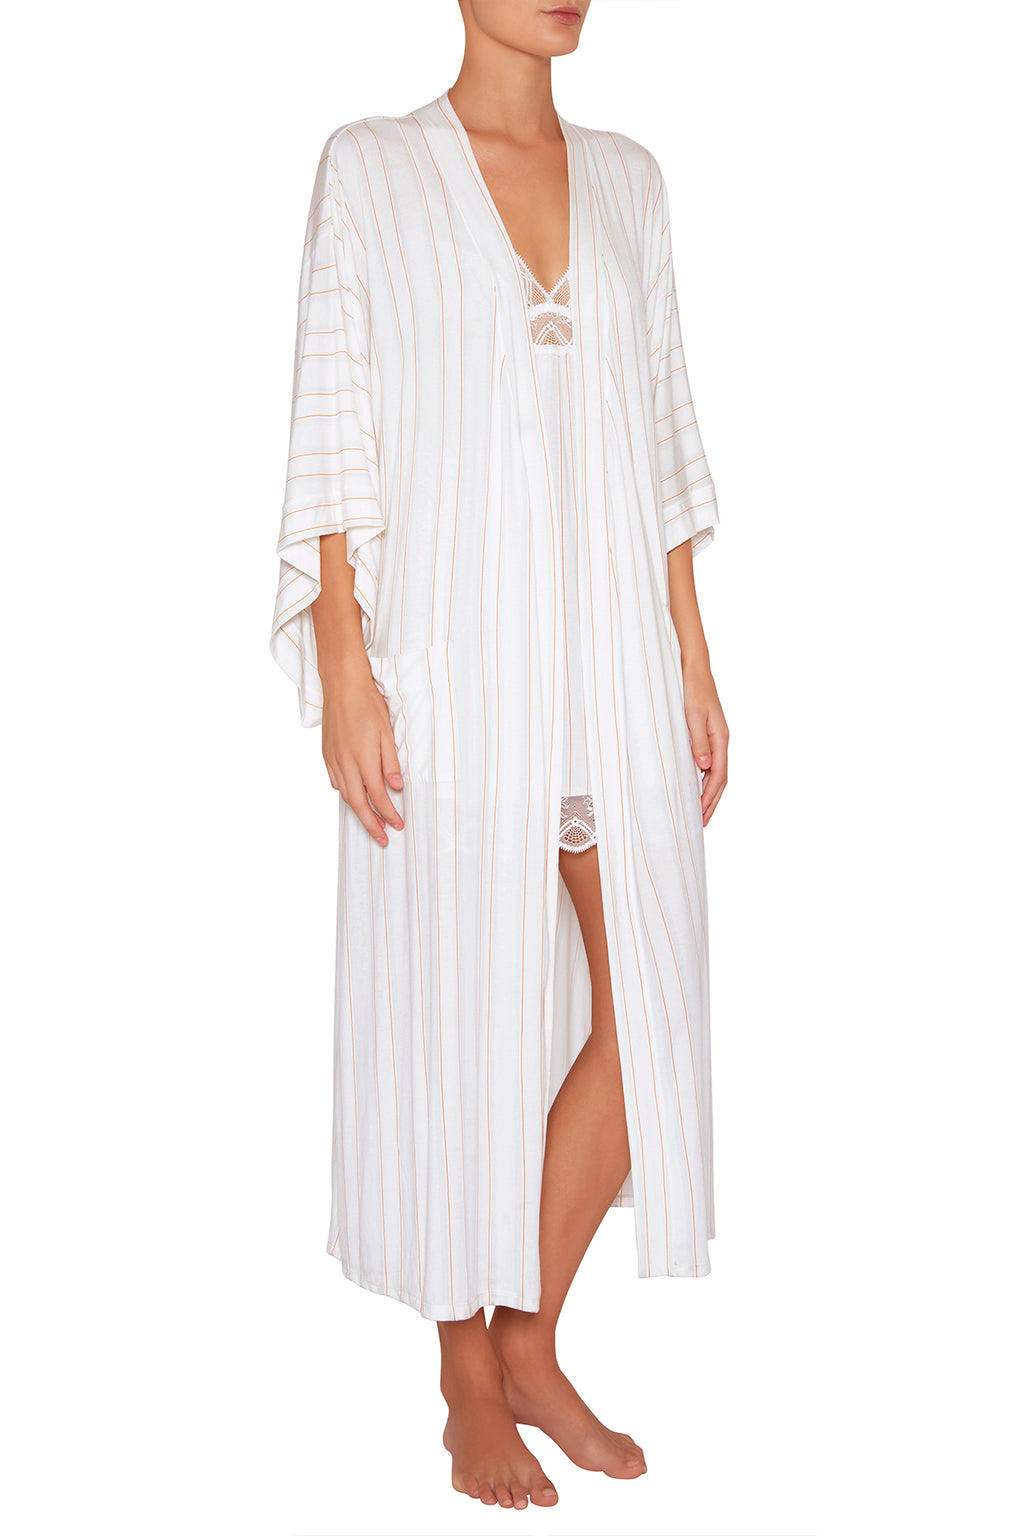 Eberjey Summer Stripes Parlor Robe - Multi